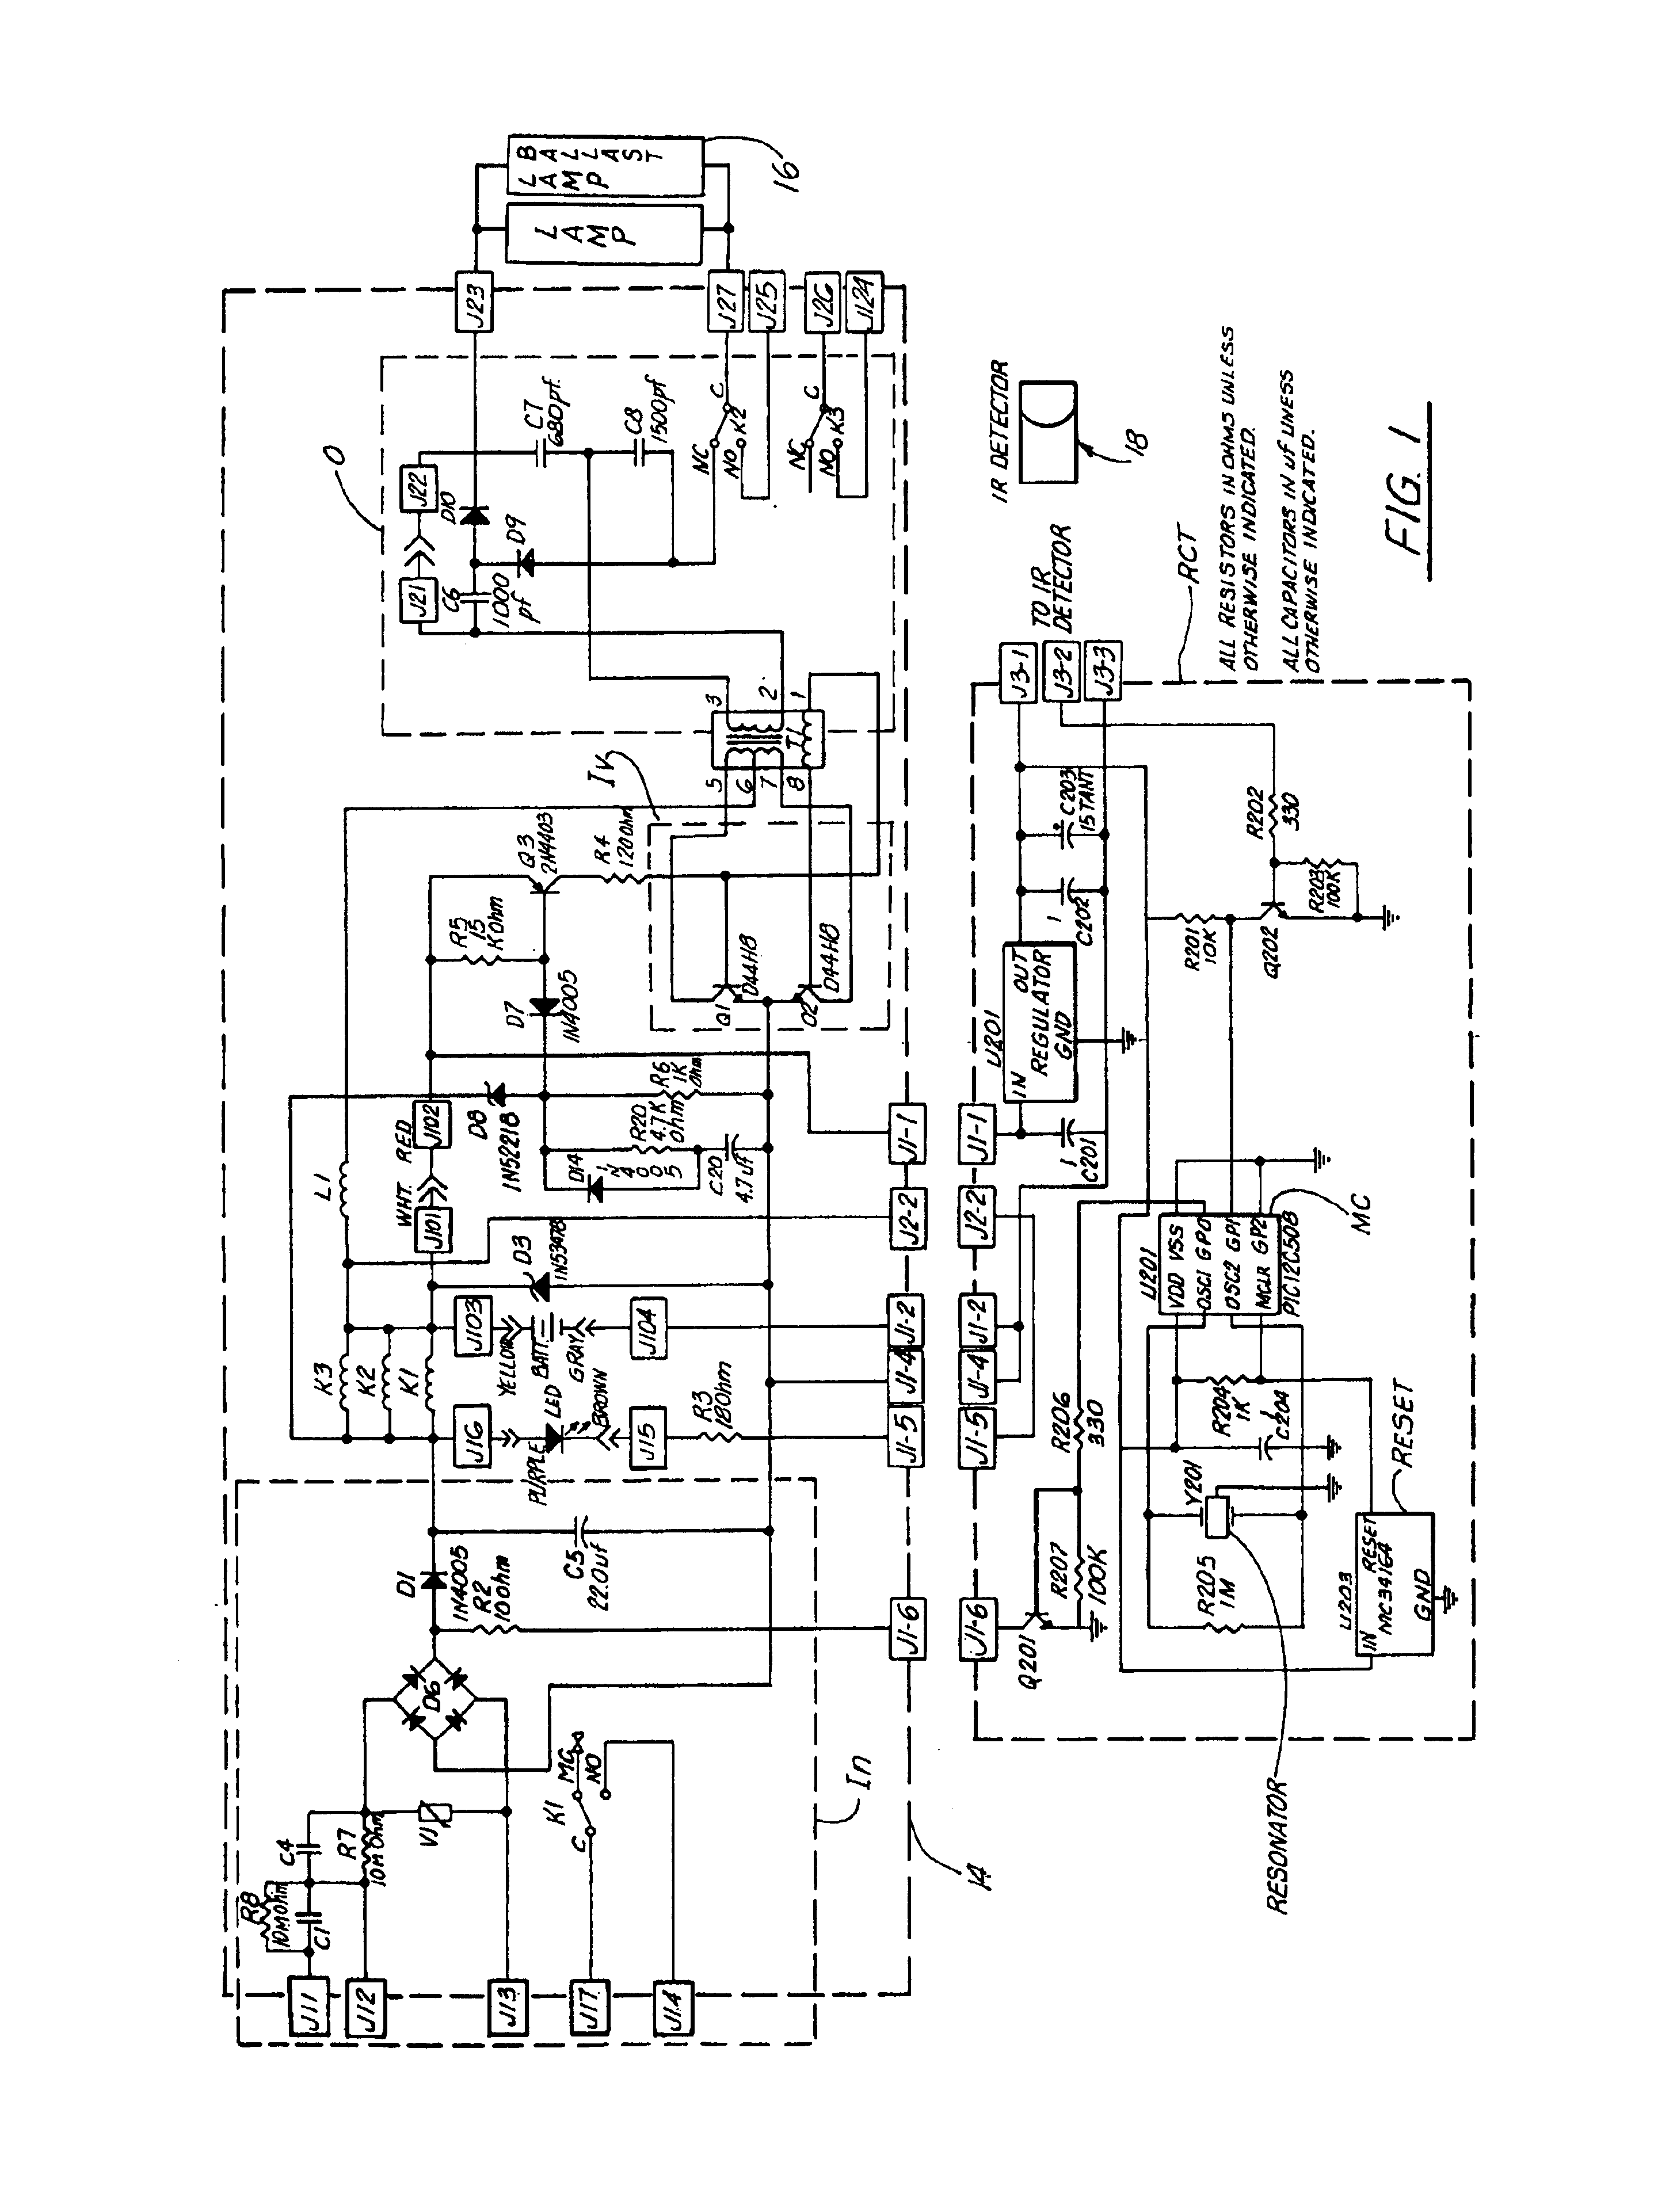 beam detector wiring diagram with Us6710546 on US6392349 as well Engineeronadisk 58 likewise Gas Detection Systems in addition Infrared Beam Barrier Proximity Sensor Circuit besides Smoke detector.